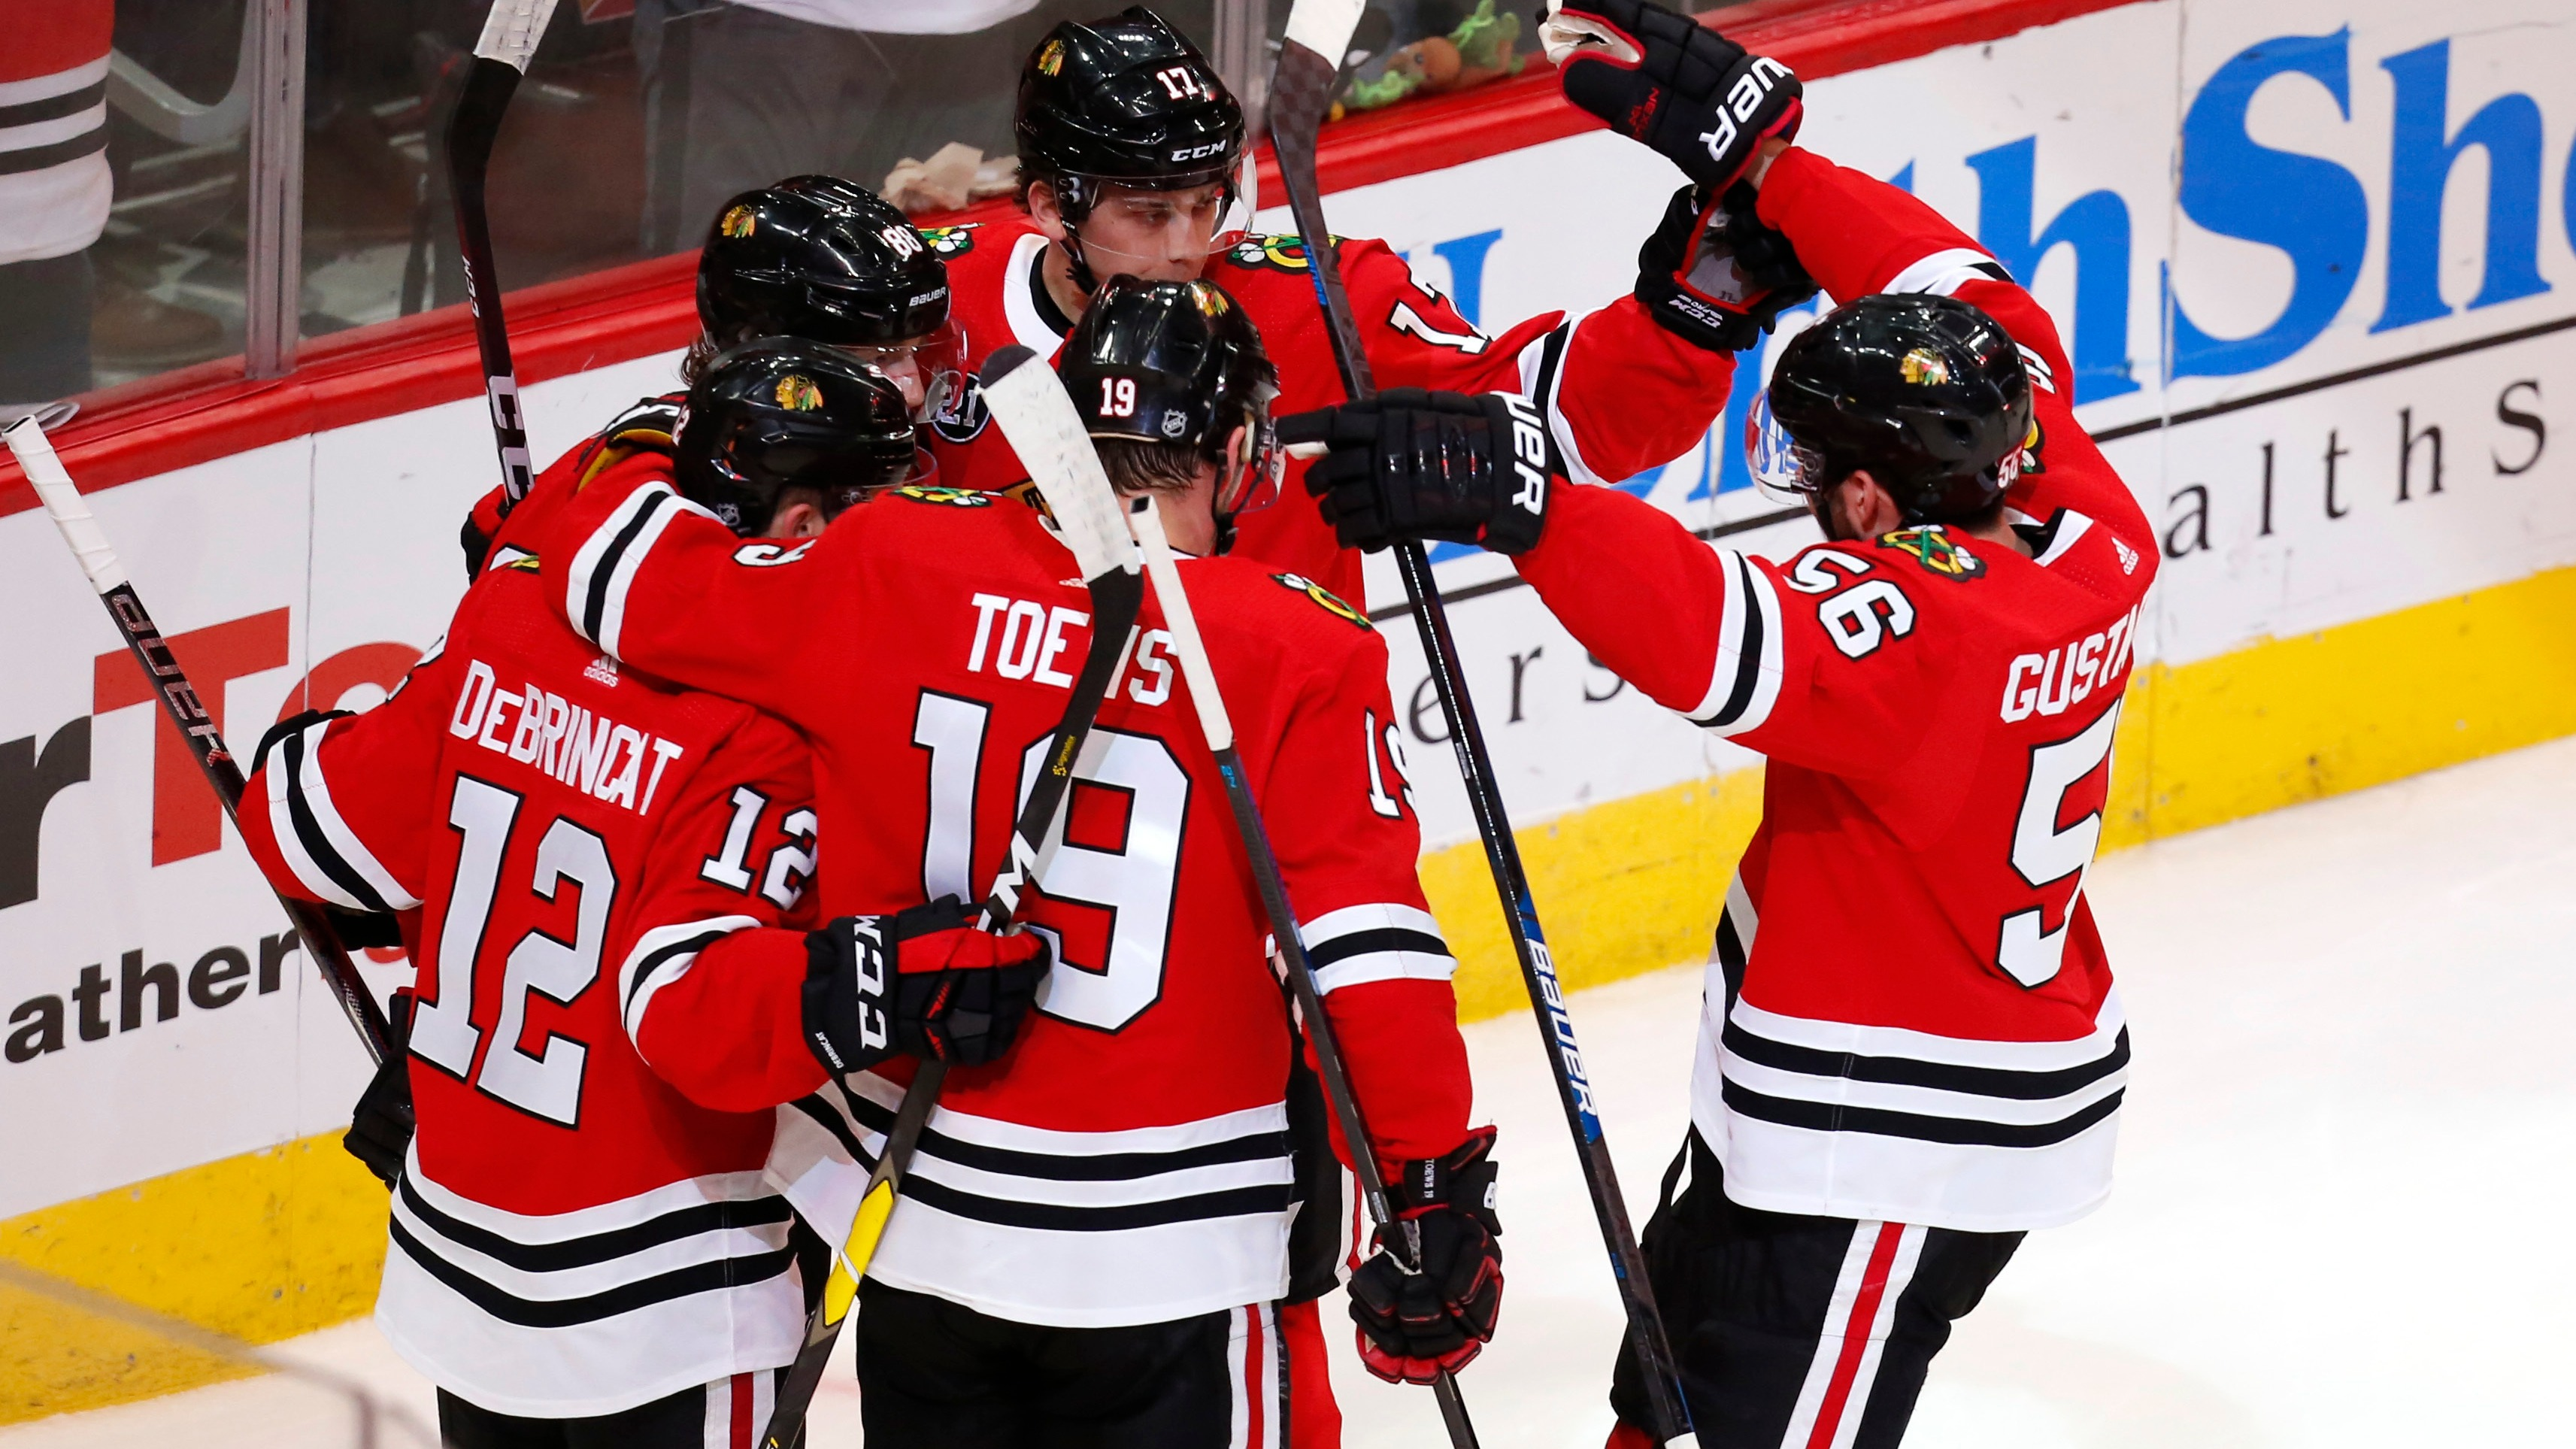 ff1908ec3 The Blackhawks have one of the worst straight-up and puck-line betting  records in the NHL, but betting the OVER has been a fun and profitable way  to enjoy ...